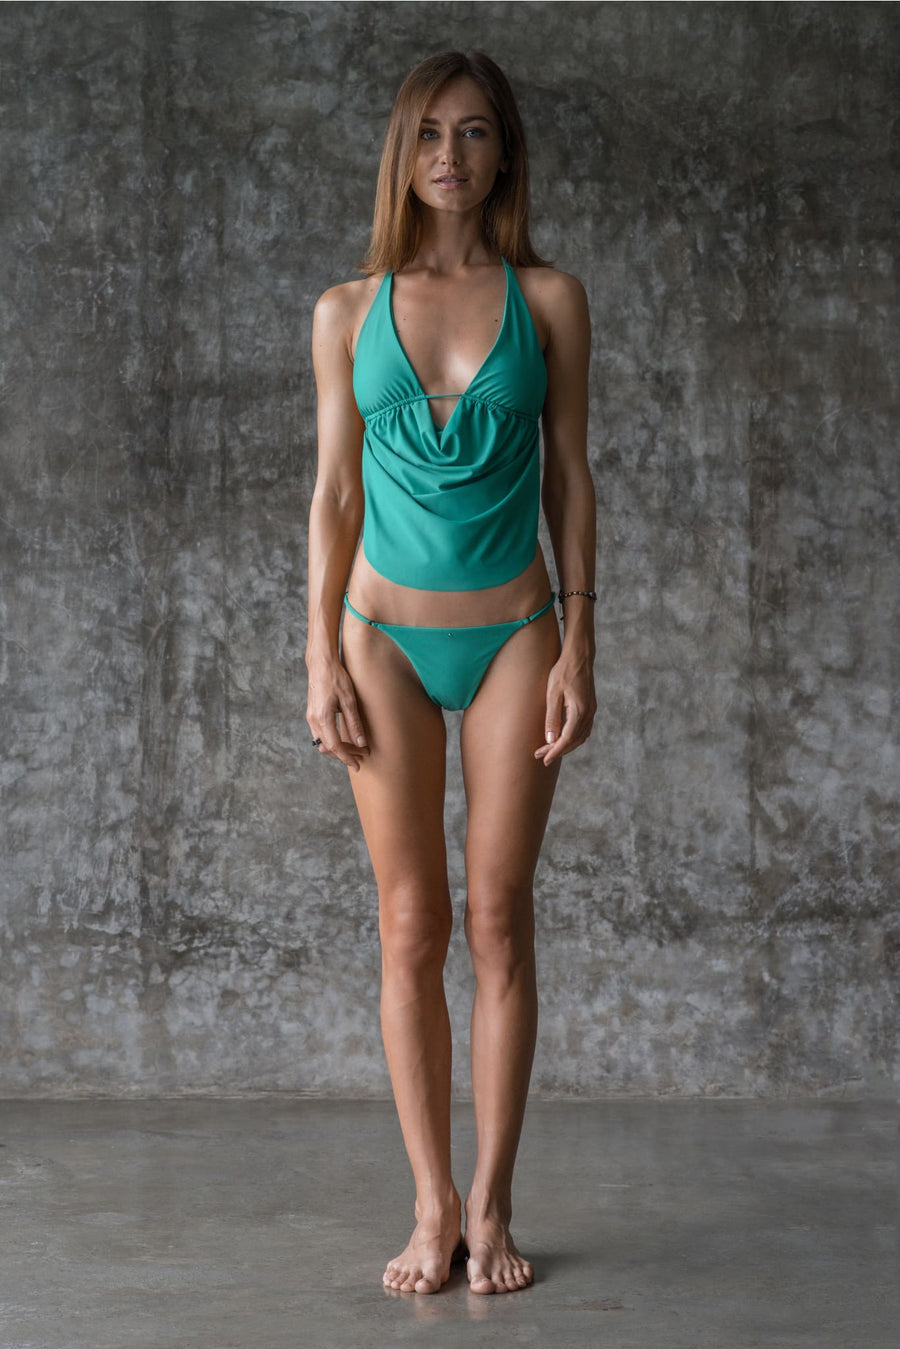 LENE TOP | ENVY GREEN - seamoneswimwear